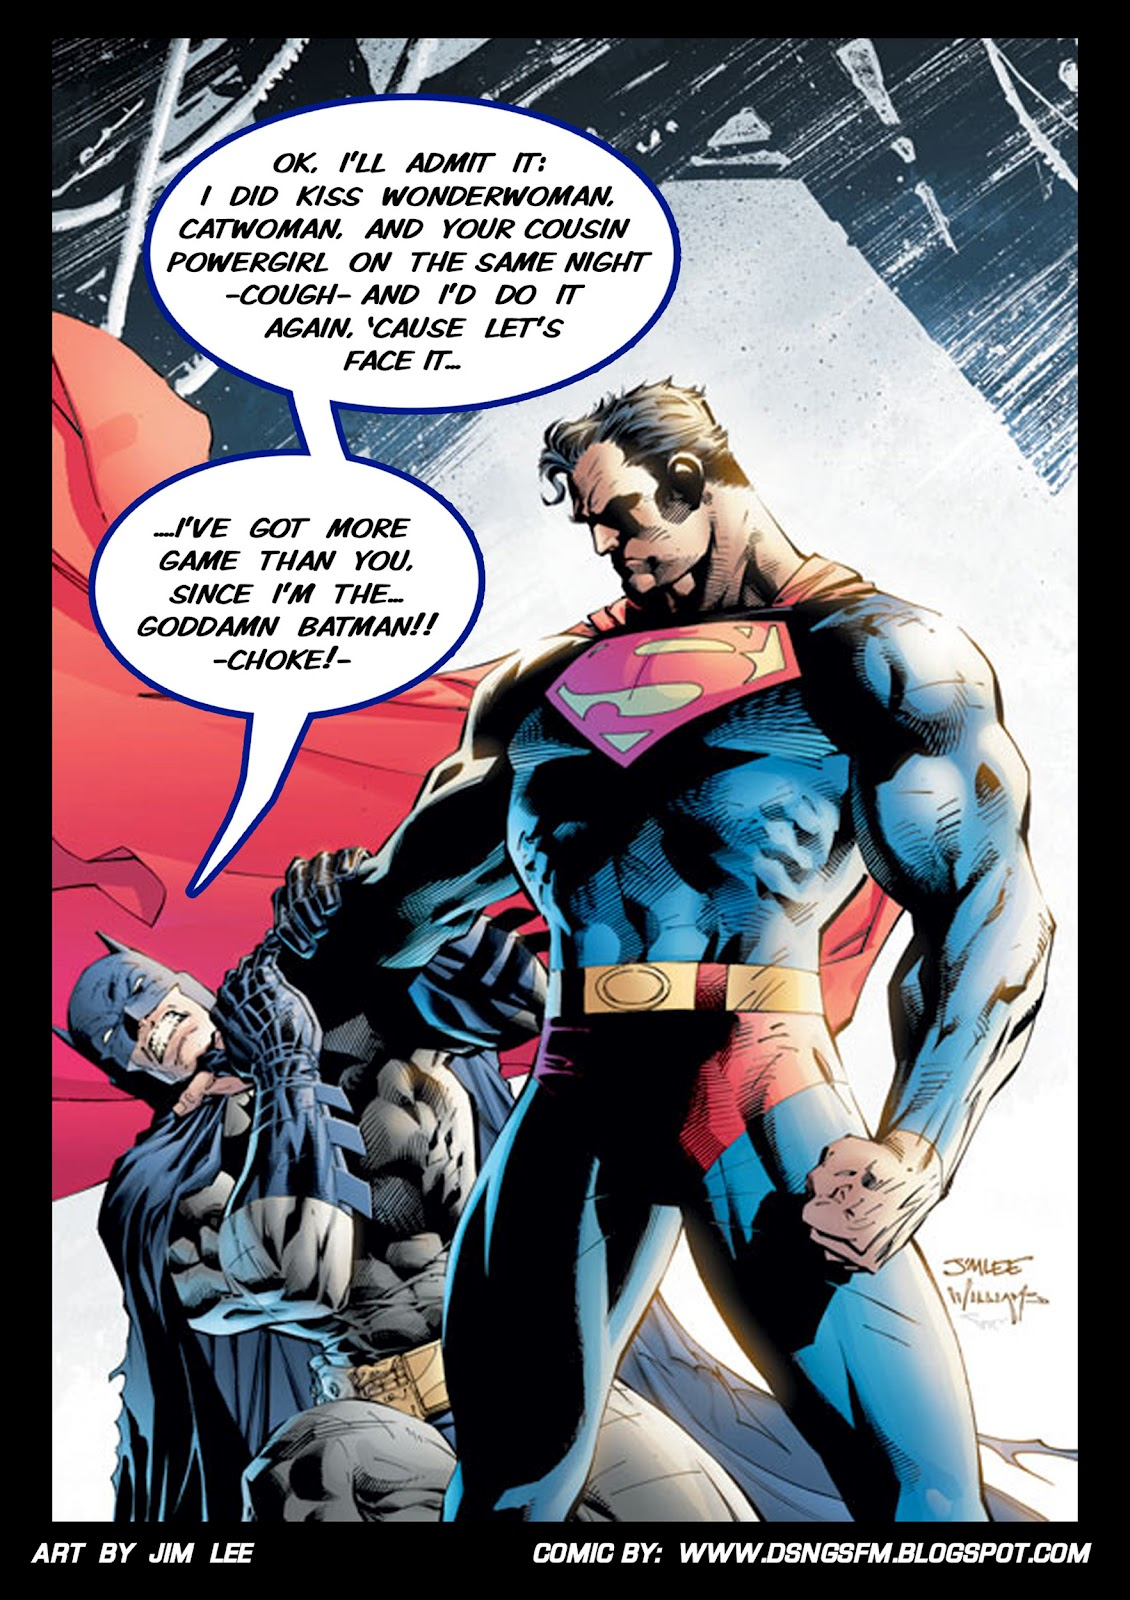 http://1.bp.blogspot.com/-BfIFyMVgs_Q/UAJxmjYBS1I/AAAAAAAAGX0/z3uAvC3HThc/s1600/batman+612+superman+fight+funny+humor+dc+COMICS+new+52+classic+jim+lee+joke+motivational+demotivational+poster+wallpaper.jpg